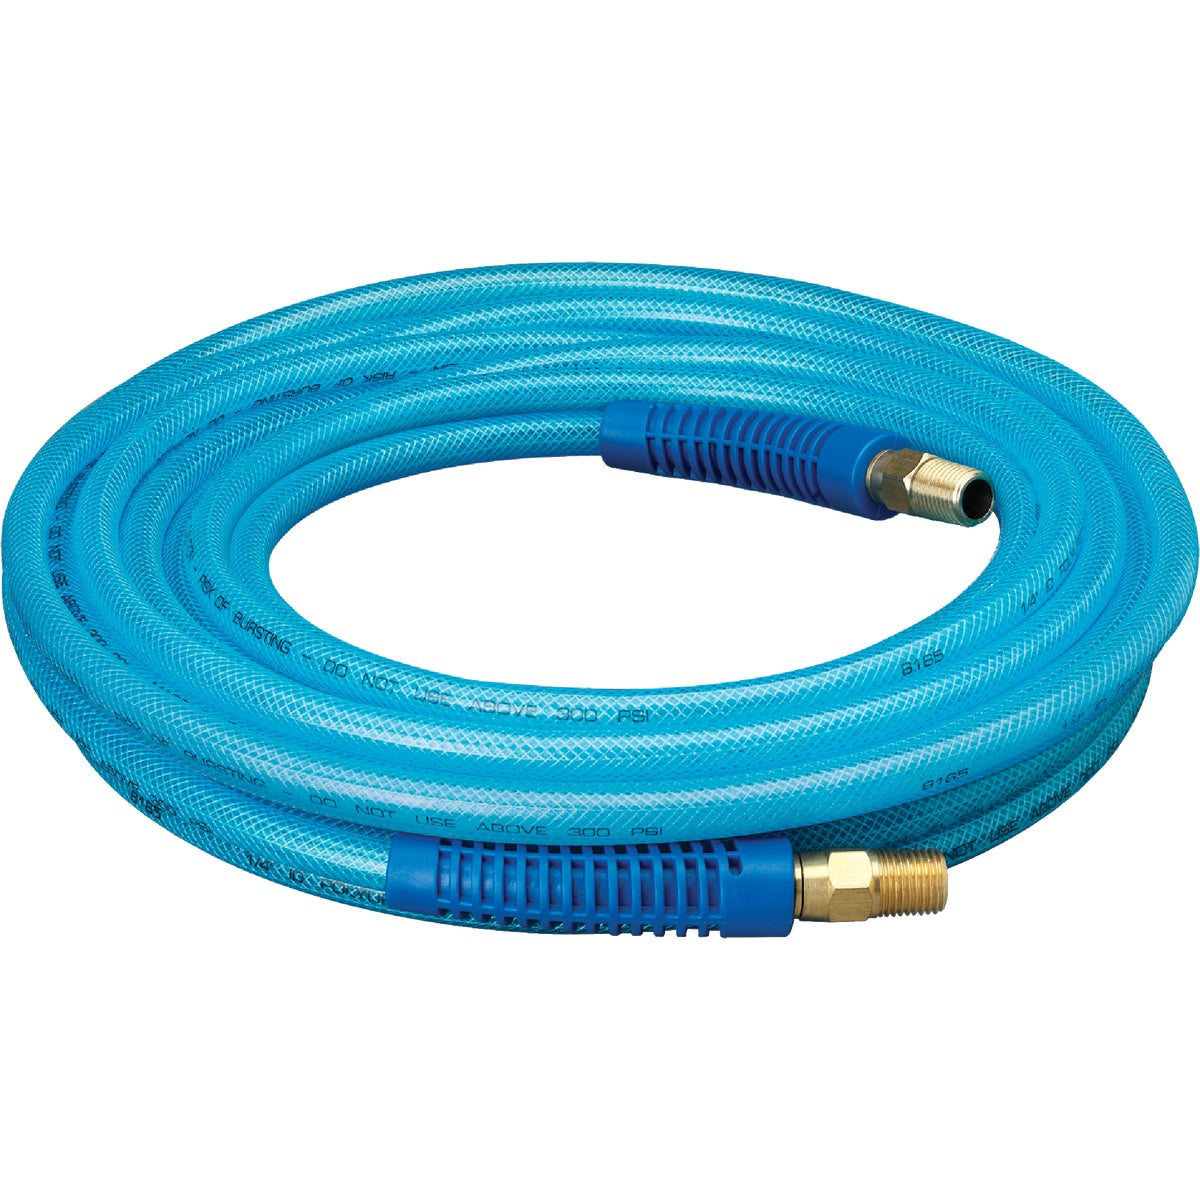 "25' X 1/4"" POLY AIR HOSE"